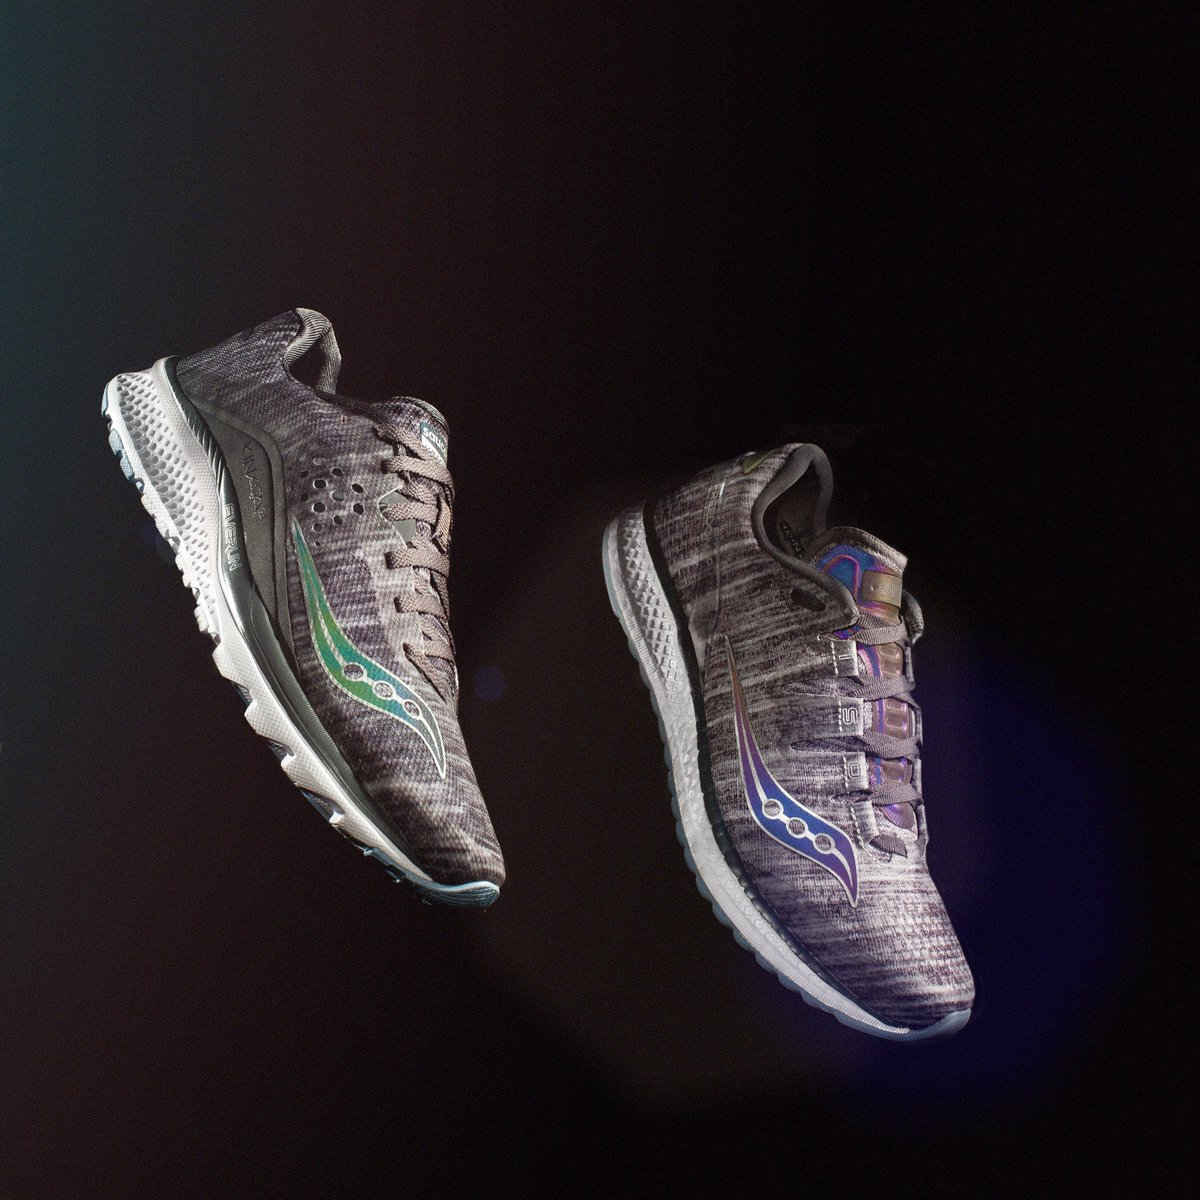 Saucony Heathered Chroma collectie